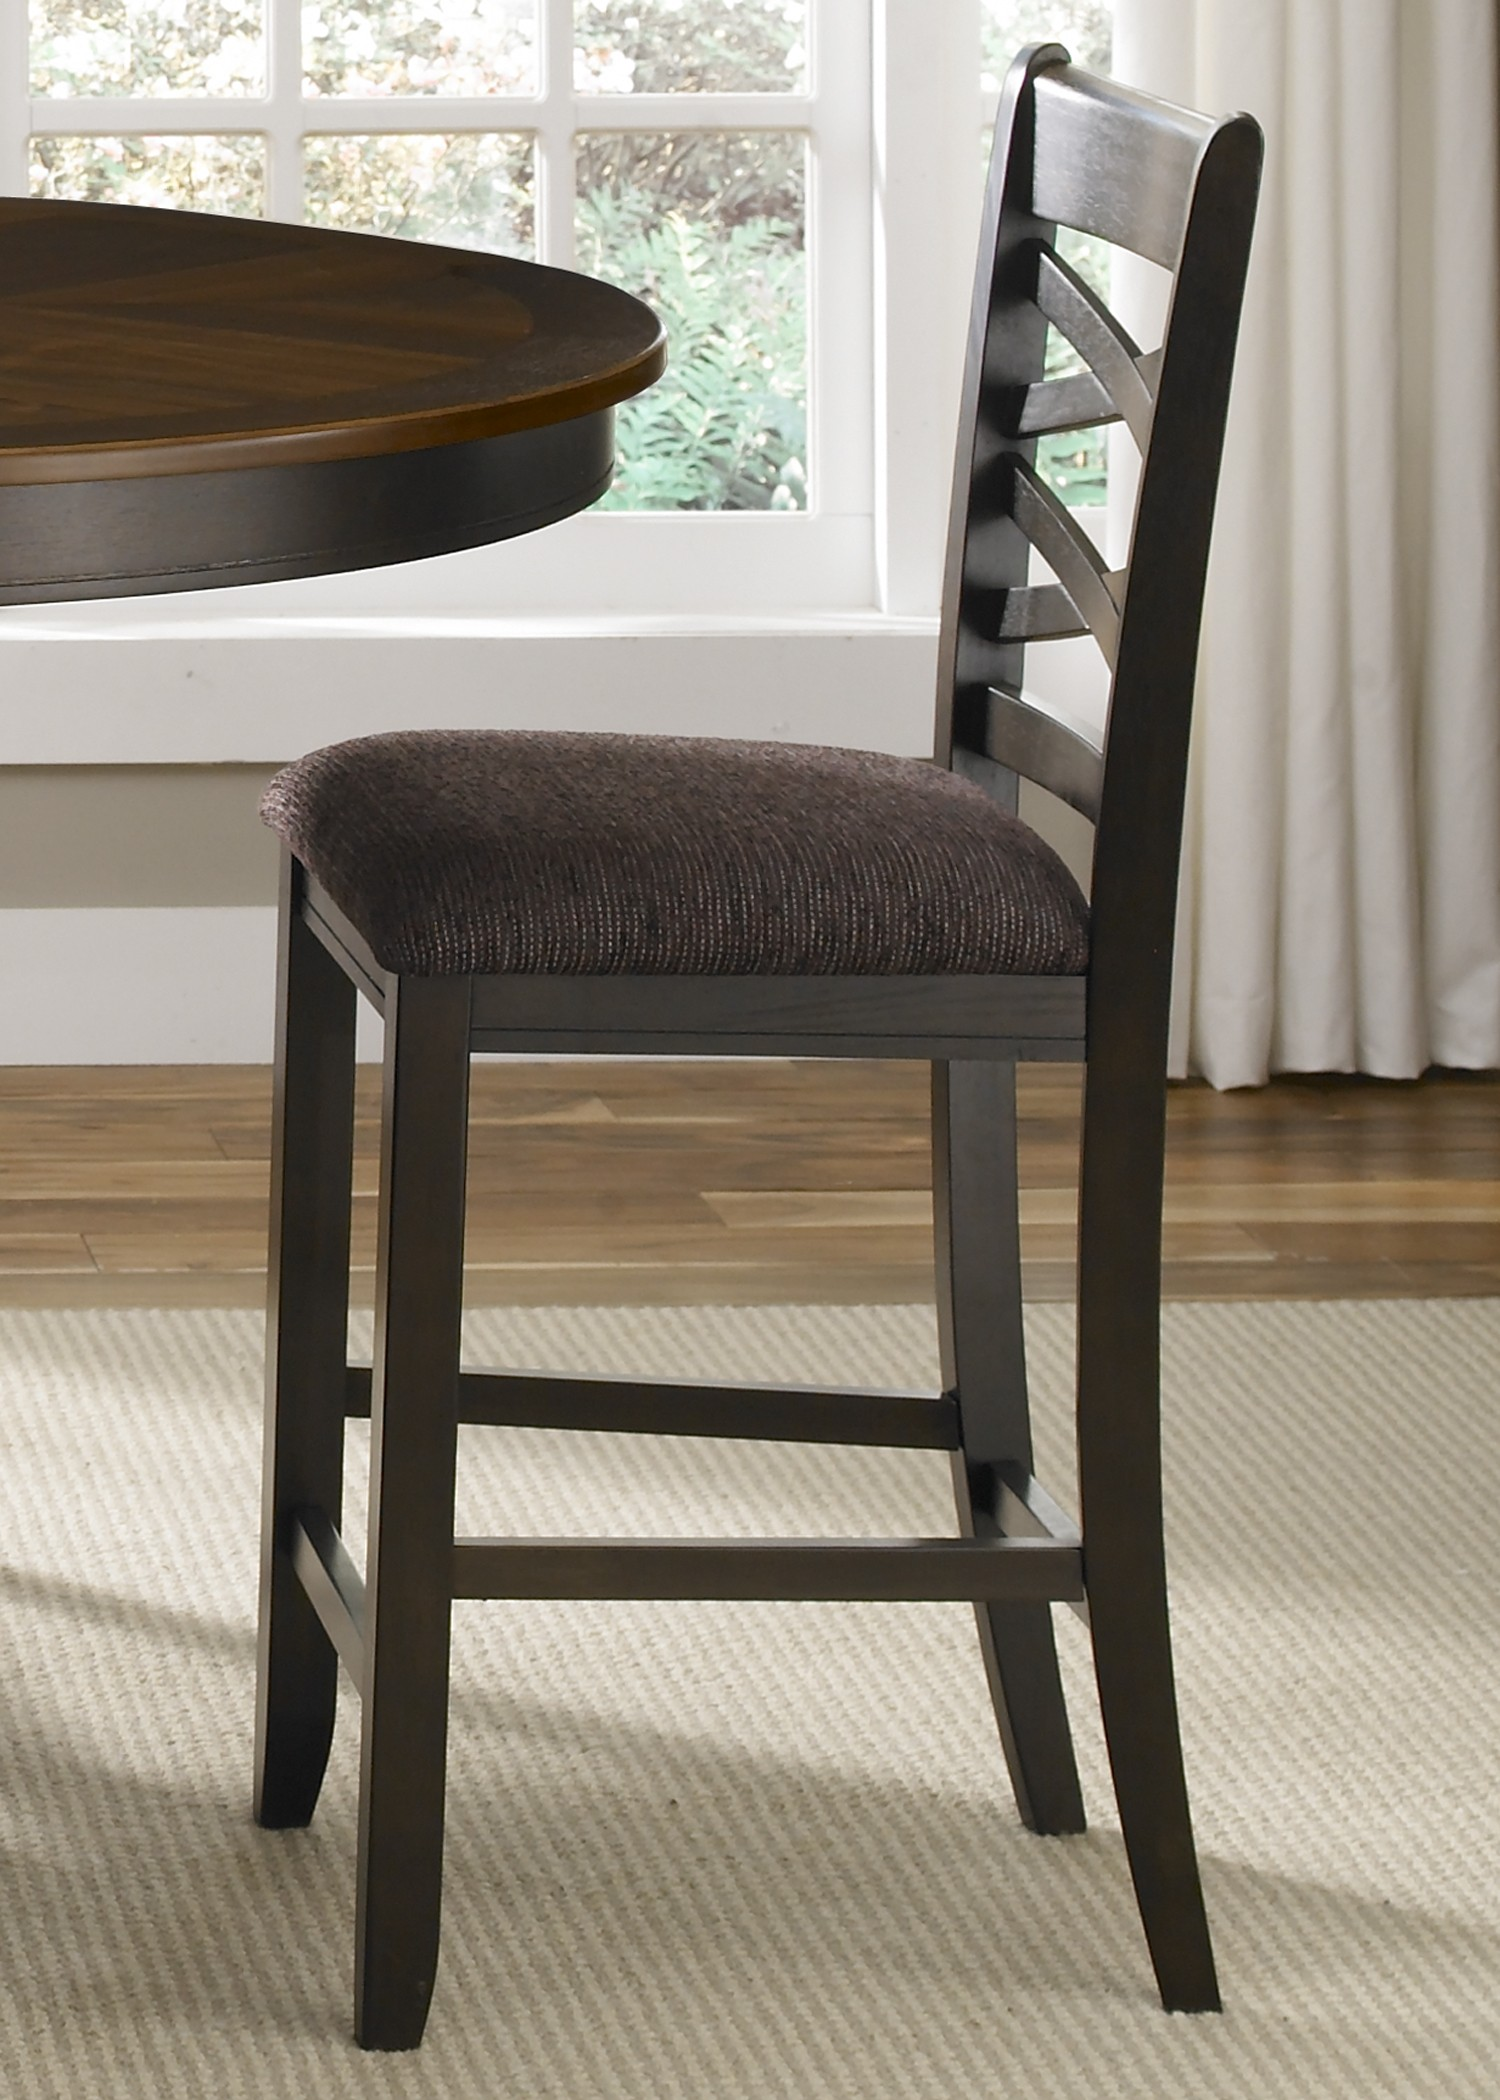 Counter Height X Back Chairs : ... Bistro II Double X Back Counter Height Chair - 74-B300124 - Furniture